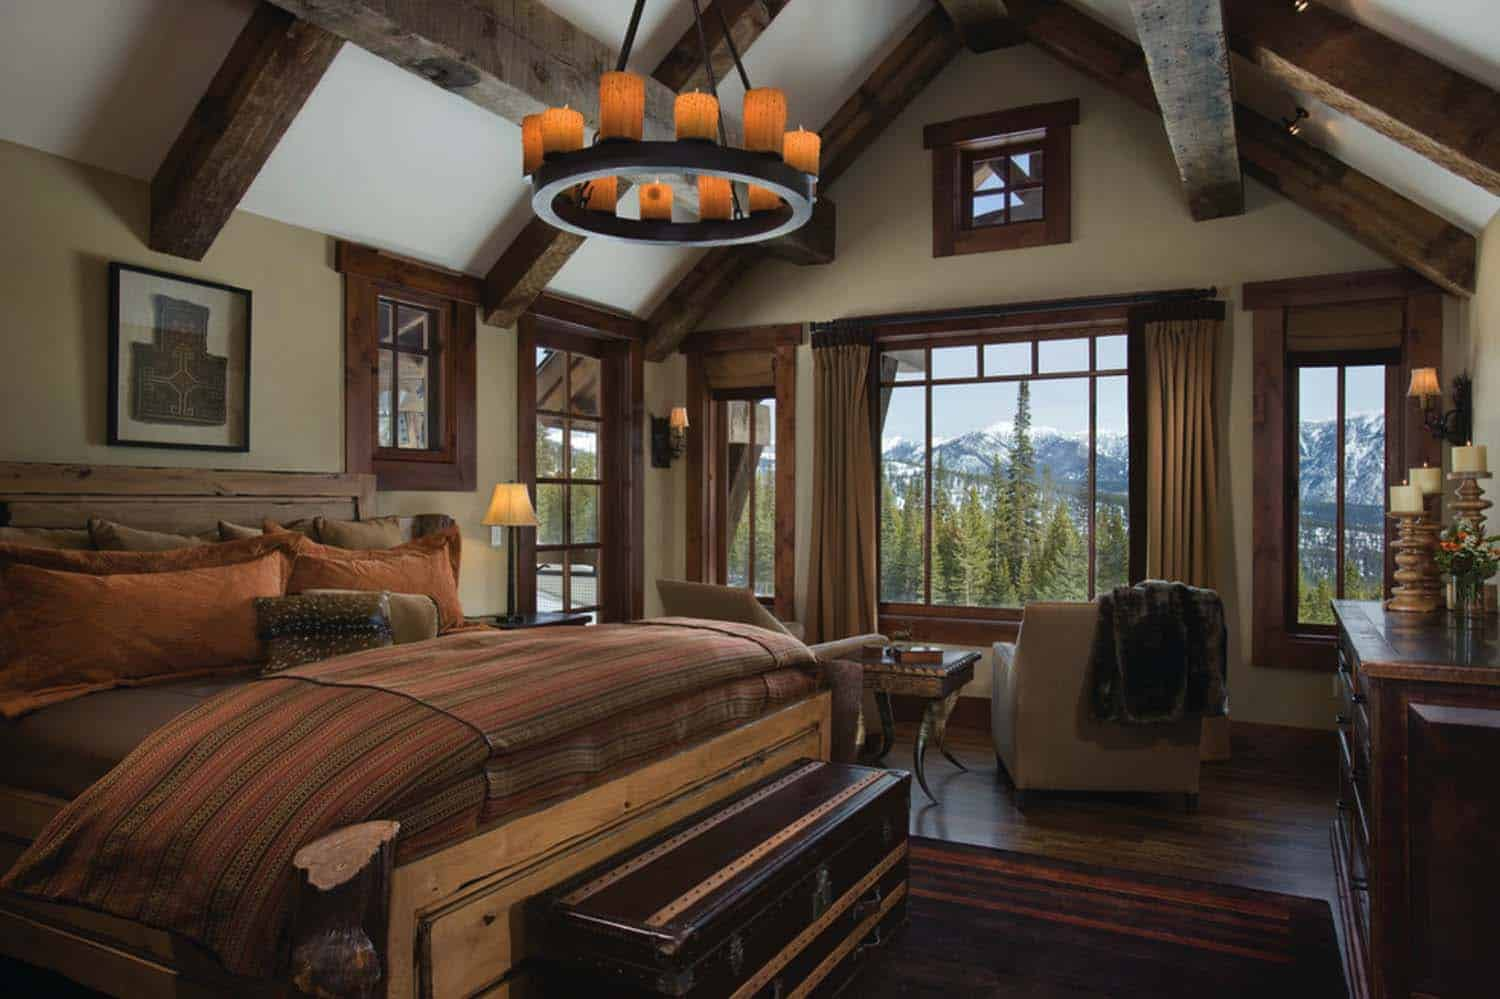 log-cabin-style-bedrooms-09-1-kindesign